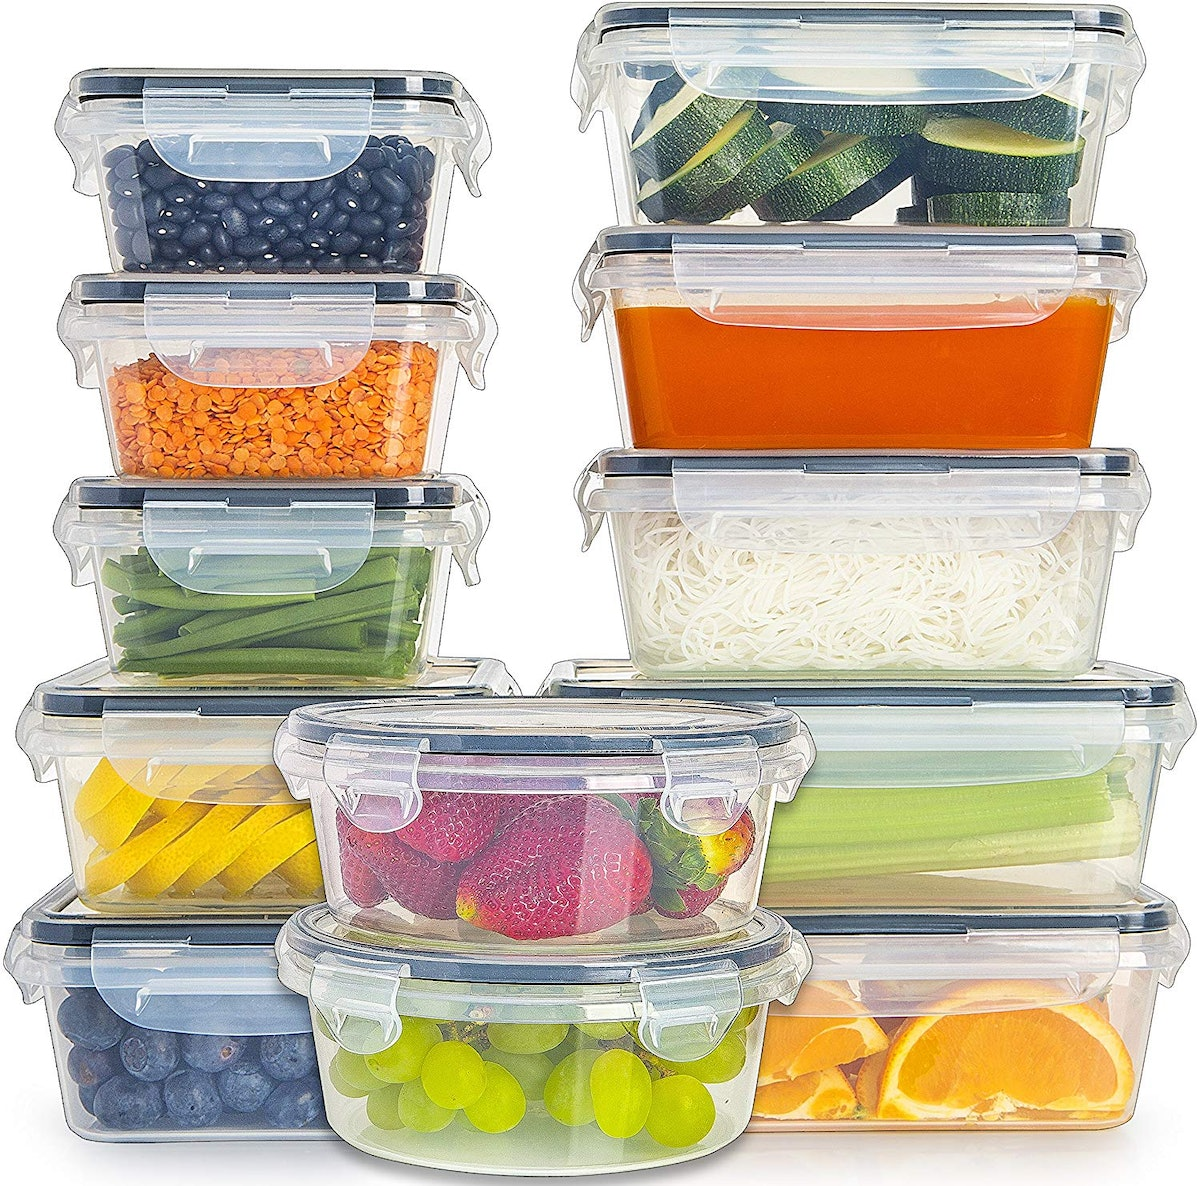 Fullstar Food Storage Containers (12-Pack)